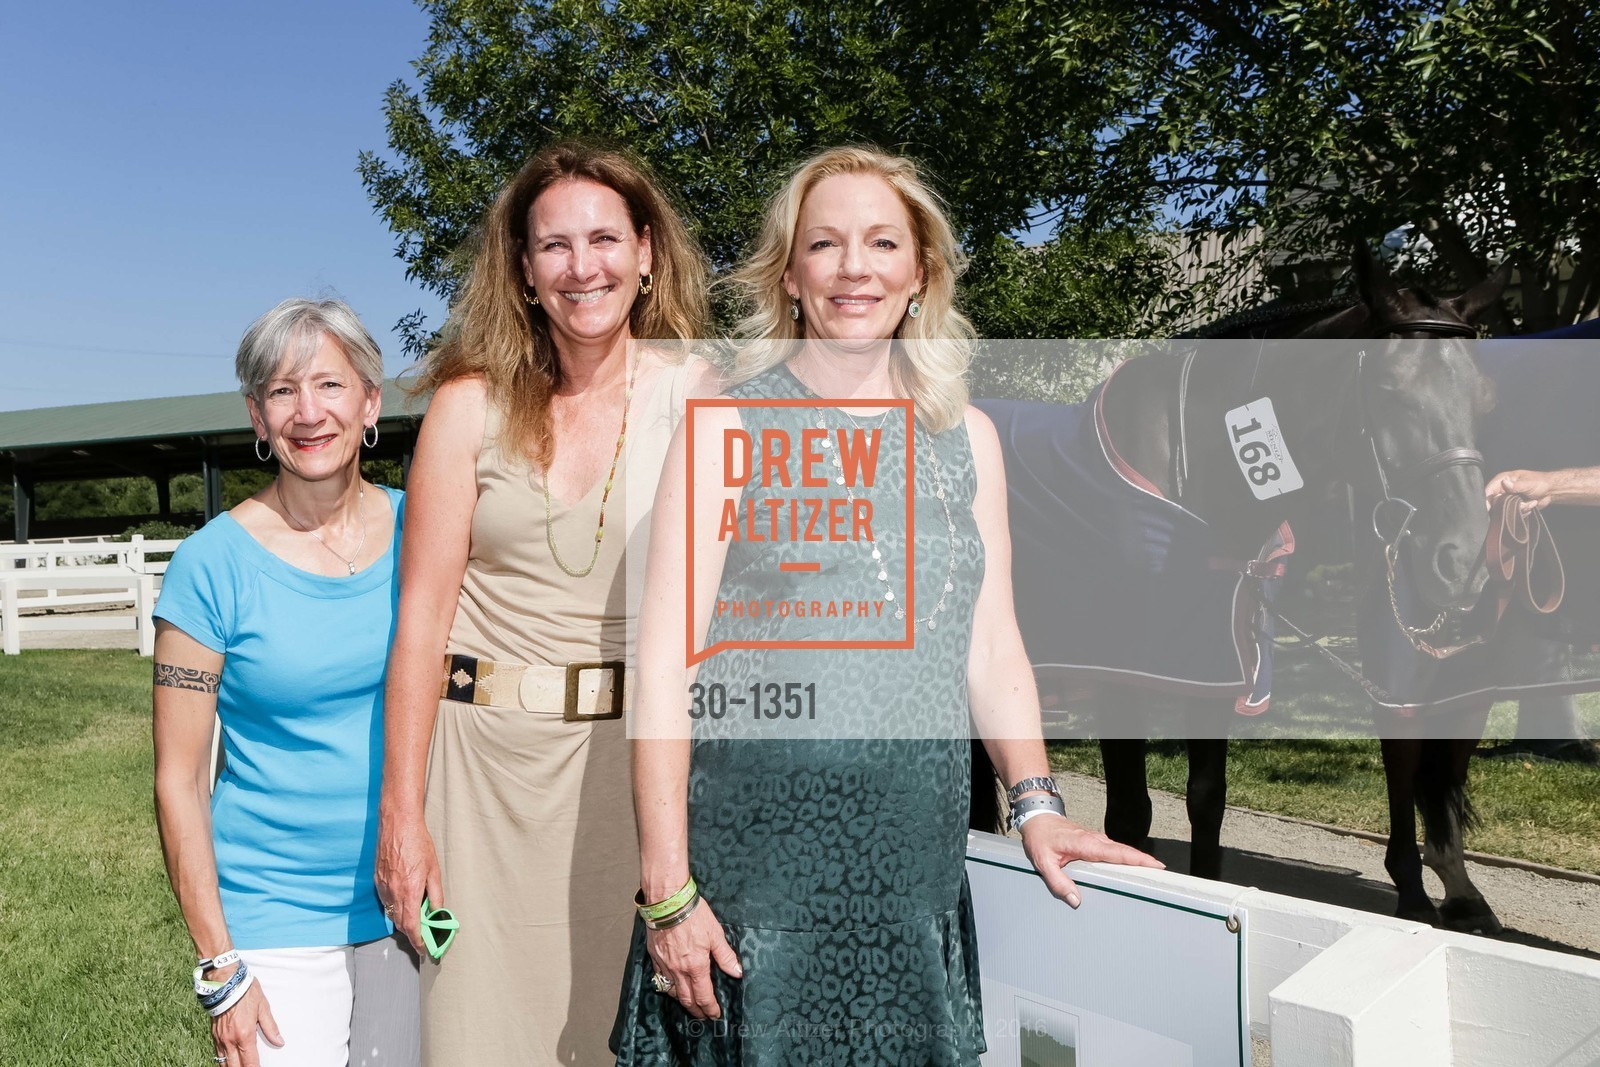 Wendy Baum, Suzanne Rischman, Jenifer McDonald, Photo #30-1351